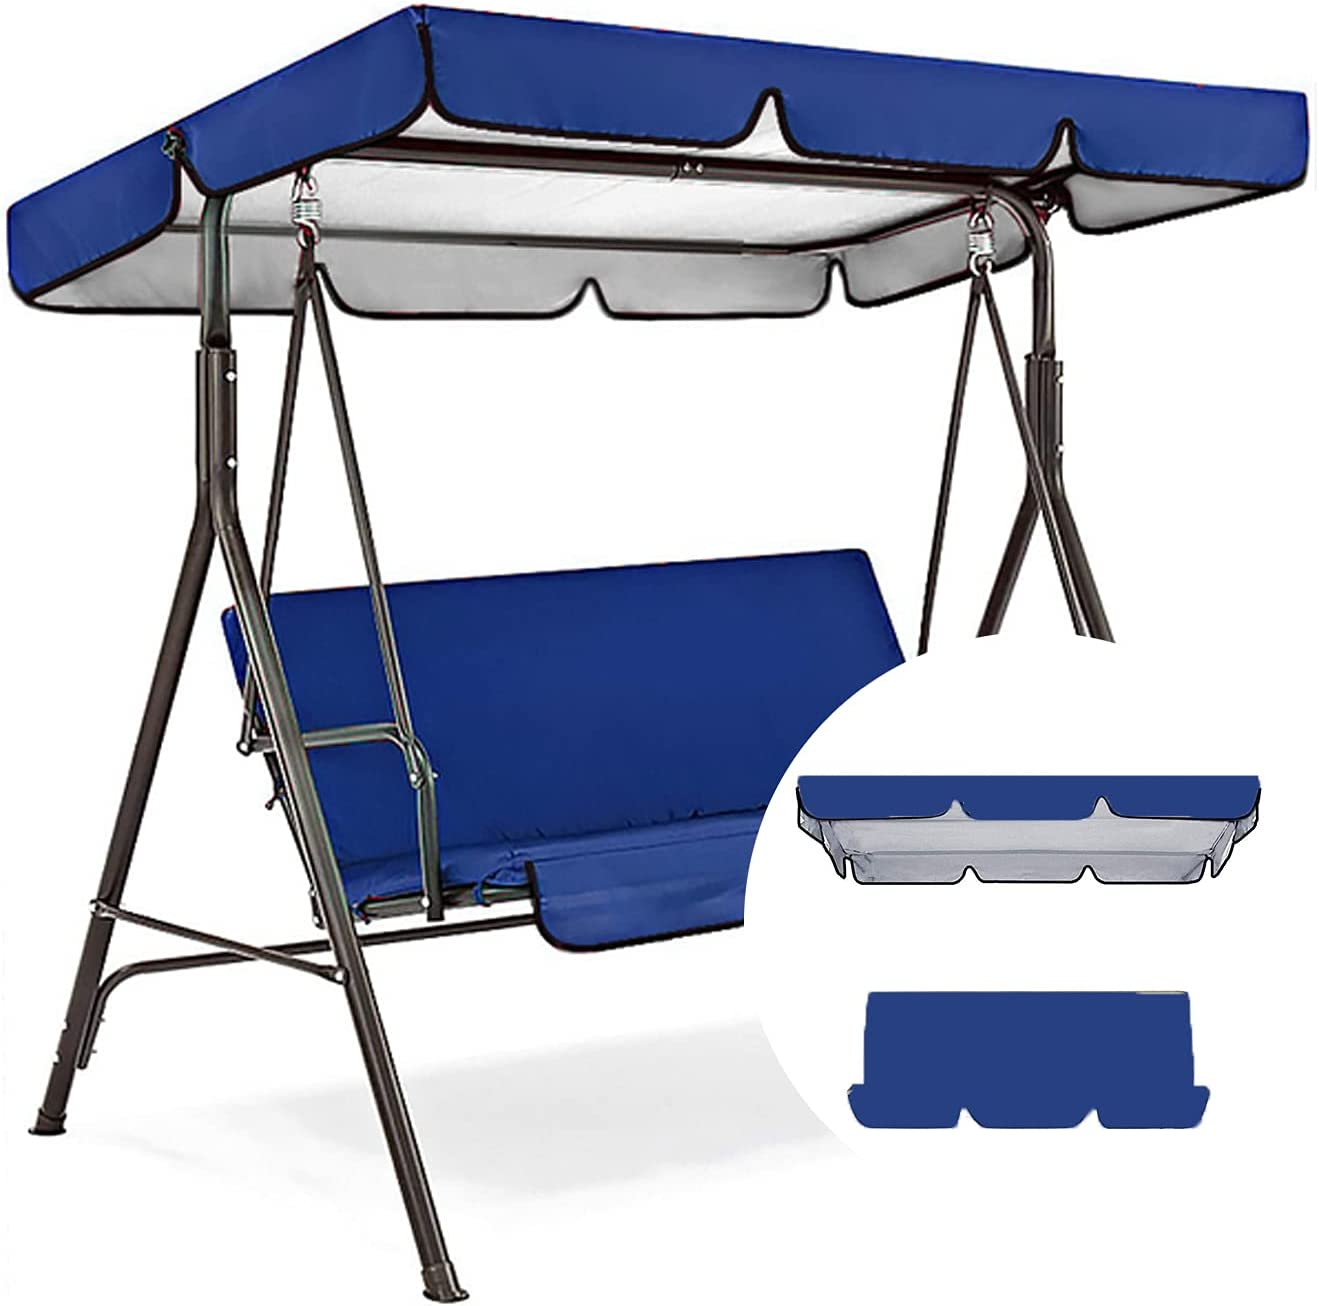 Max 56% OFF Outdoor Swing Max 51% OFF Canopy Replacement Cover 3 Cushion S